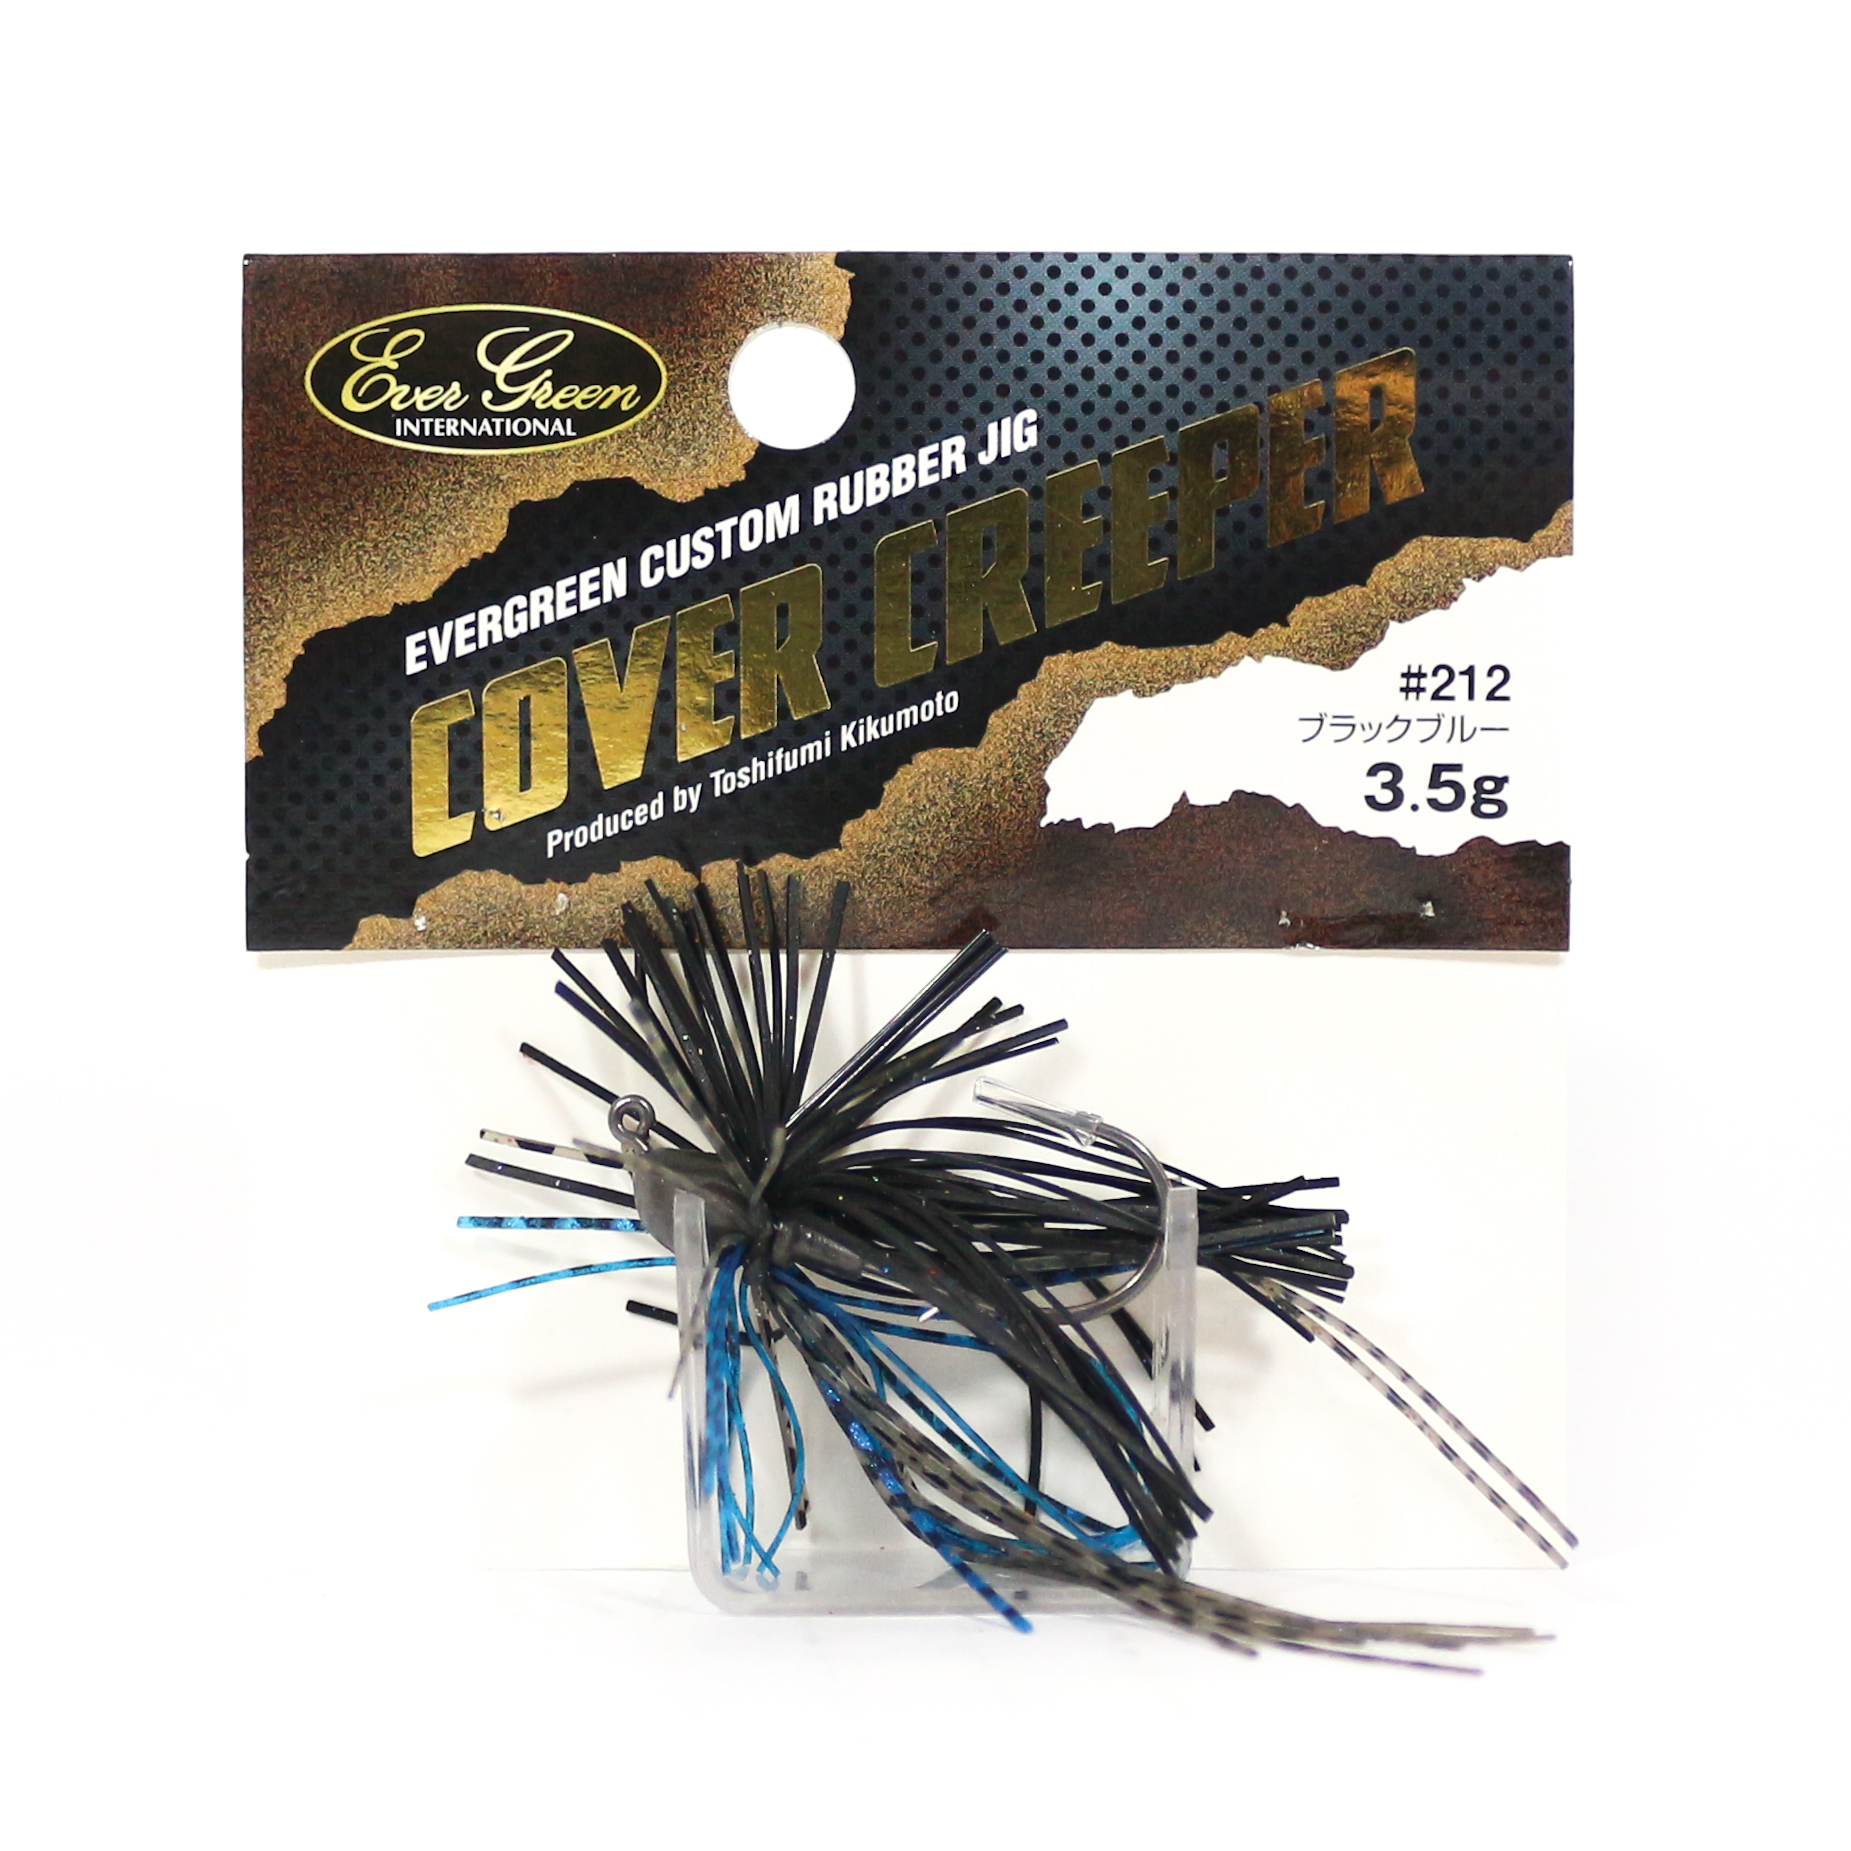 Evergreen Rubber Jig Cover Creeper 3.5g Sinking Lure 212 (3467)